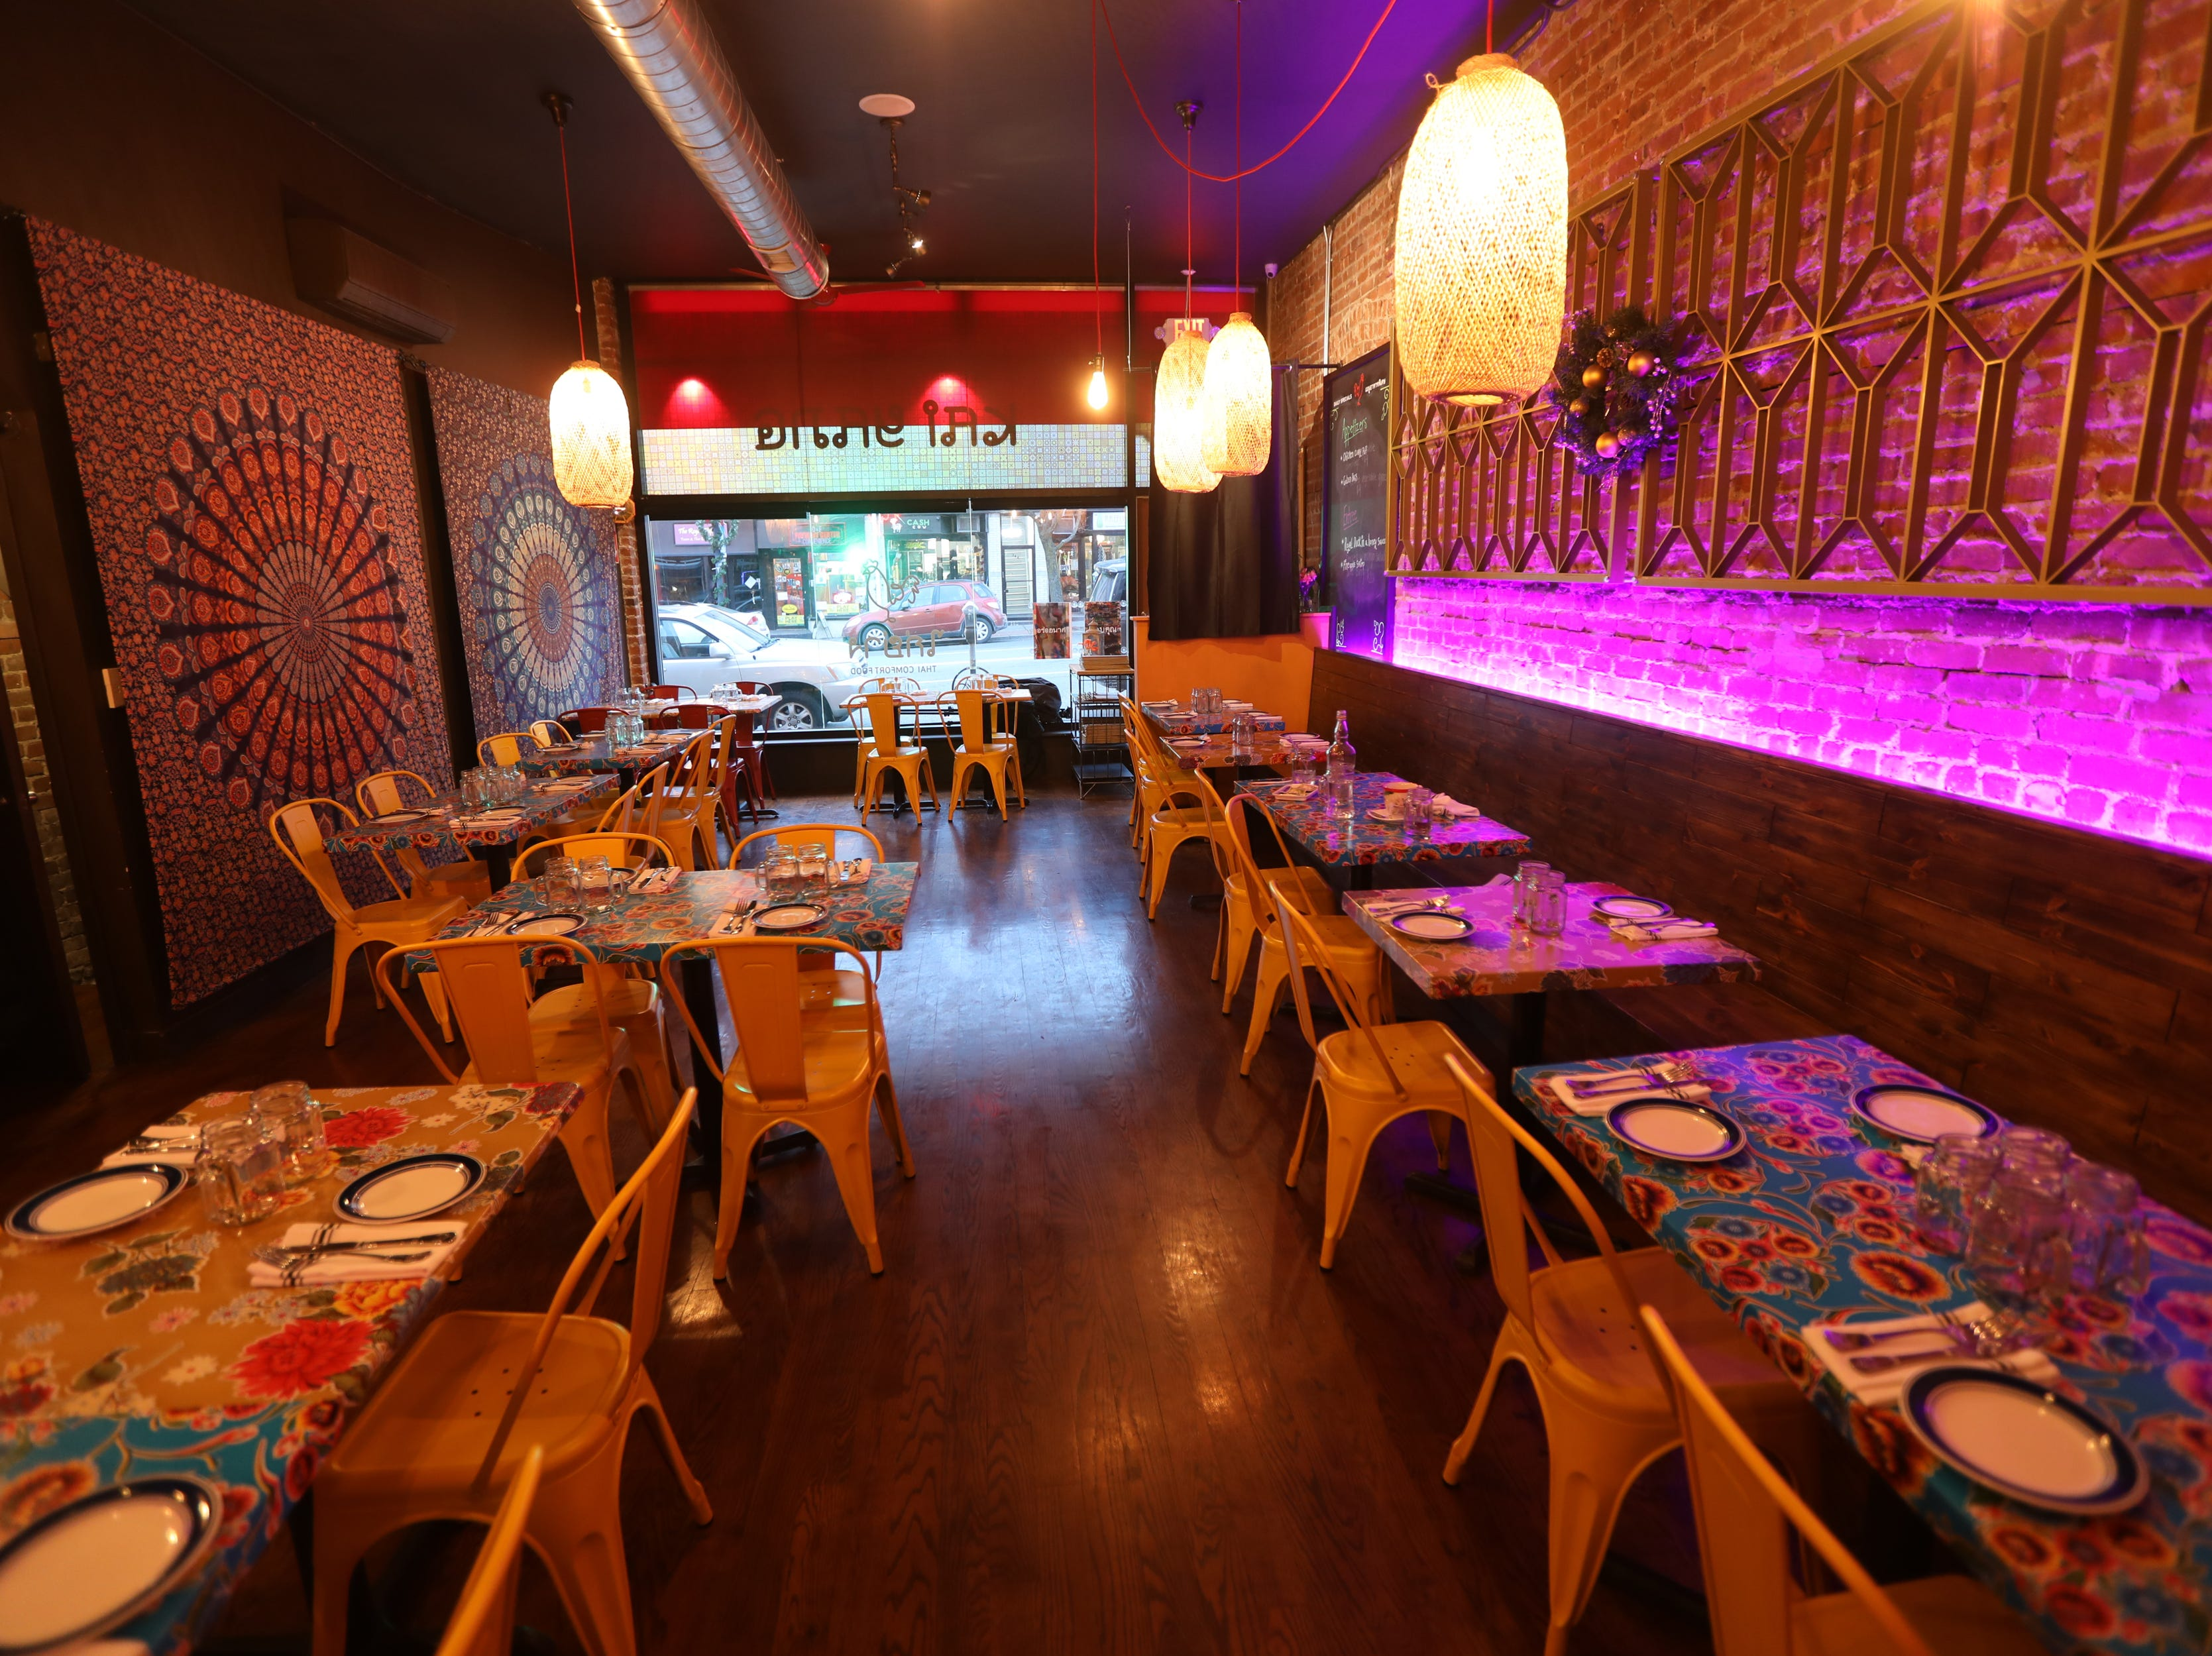 Kai Yang restaurant is located at 345 Bloomfield in Montclair. Tuesday, January 15, 2019